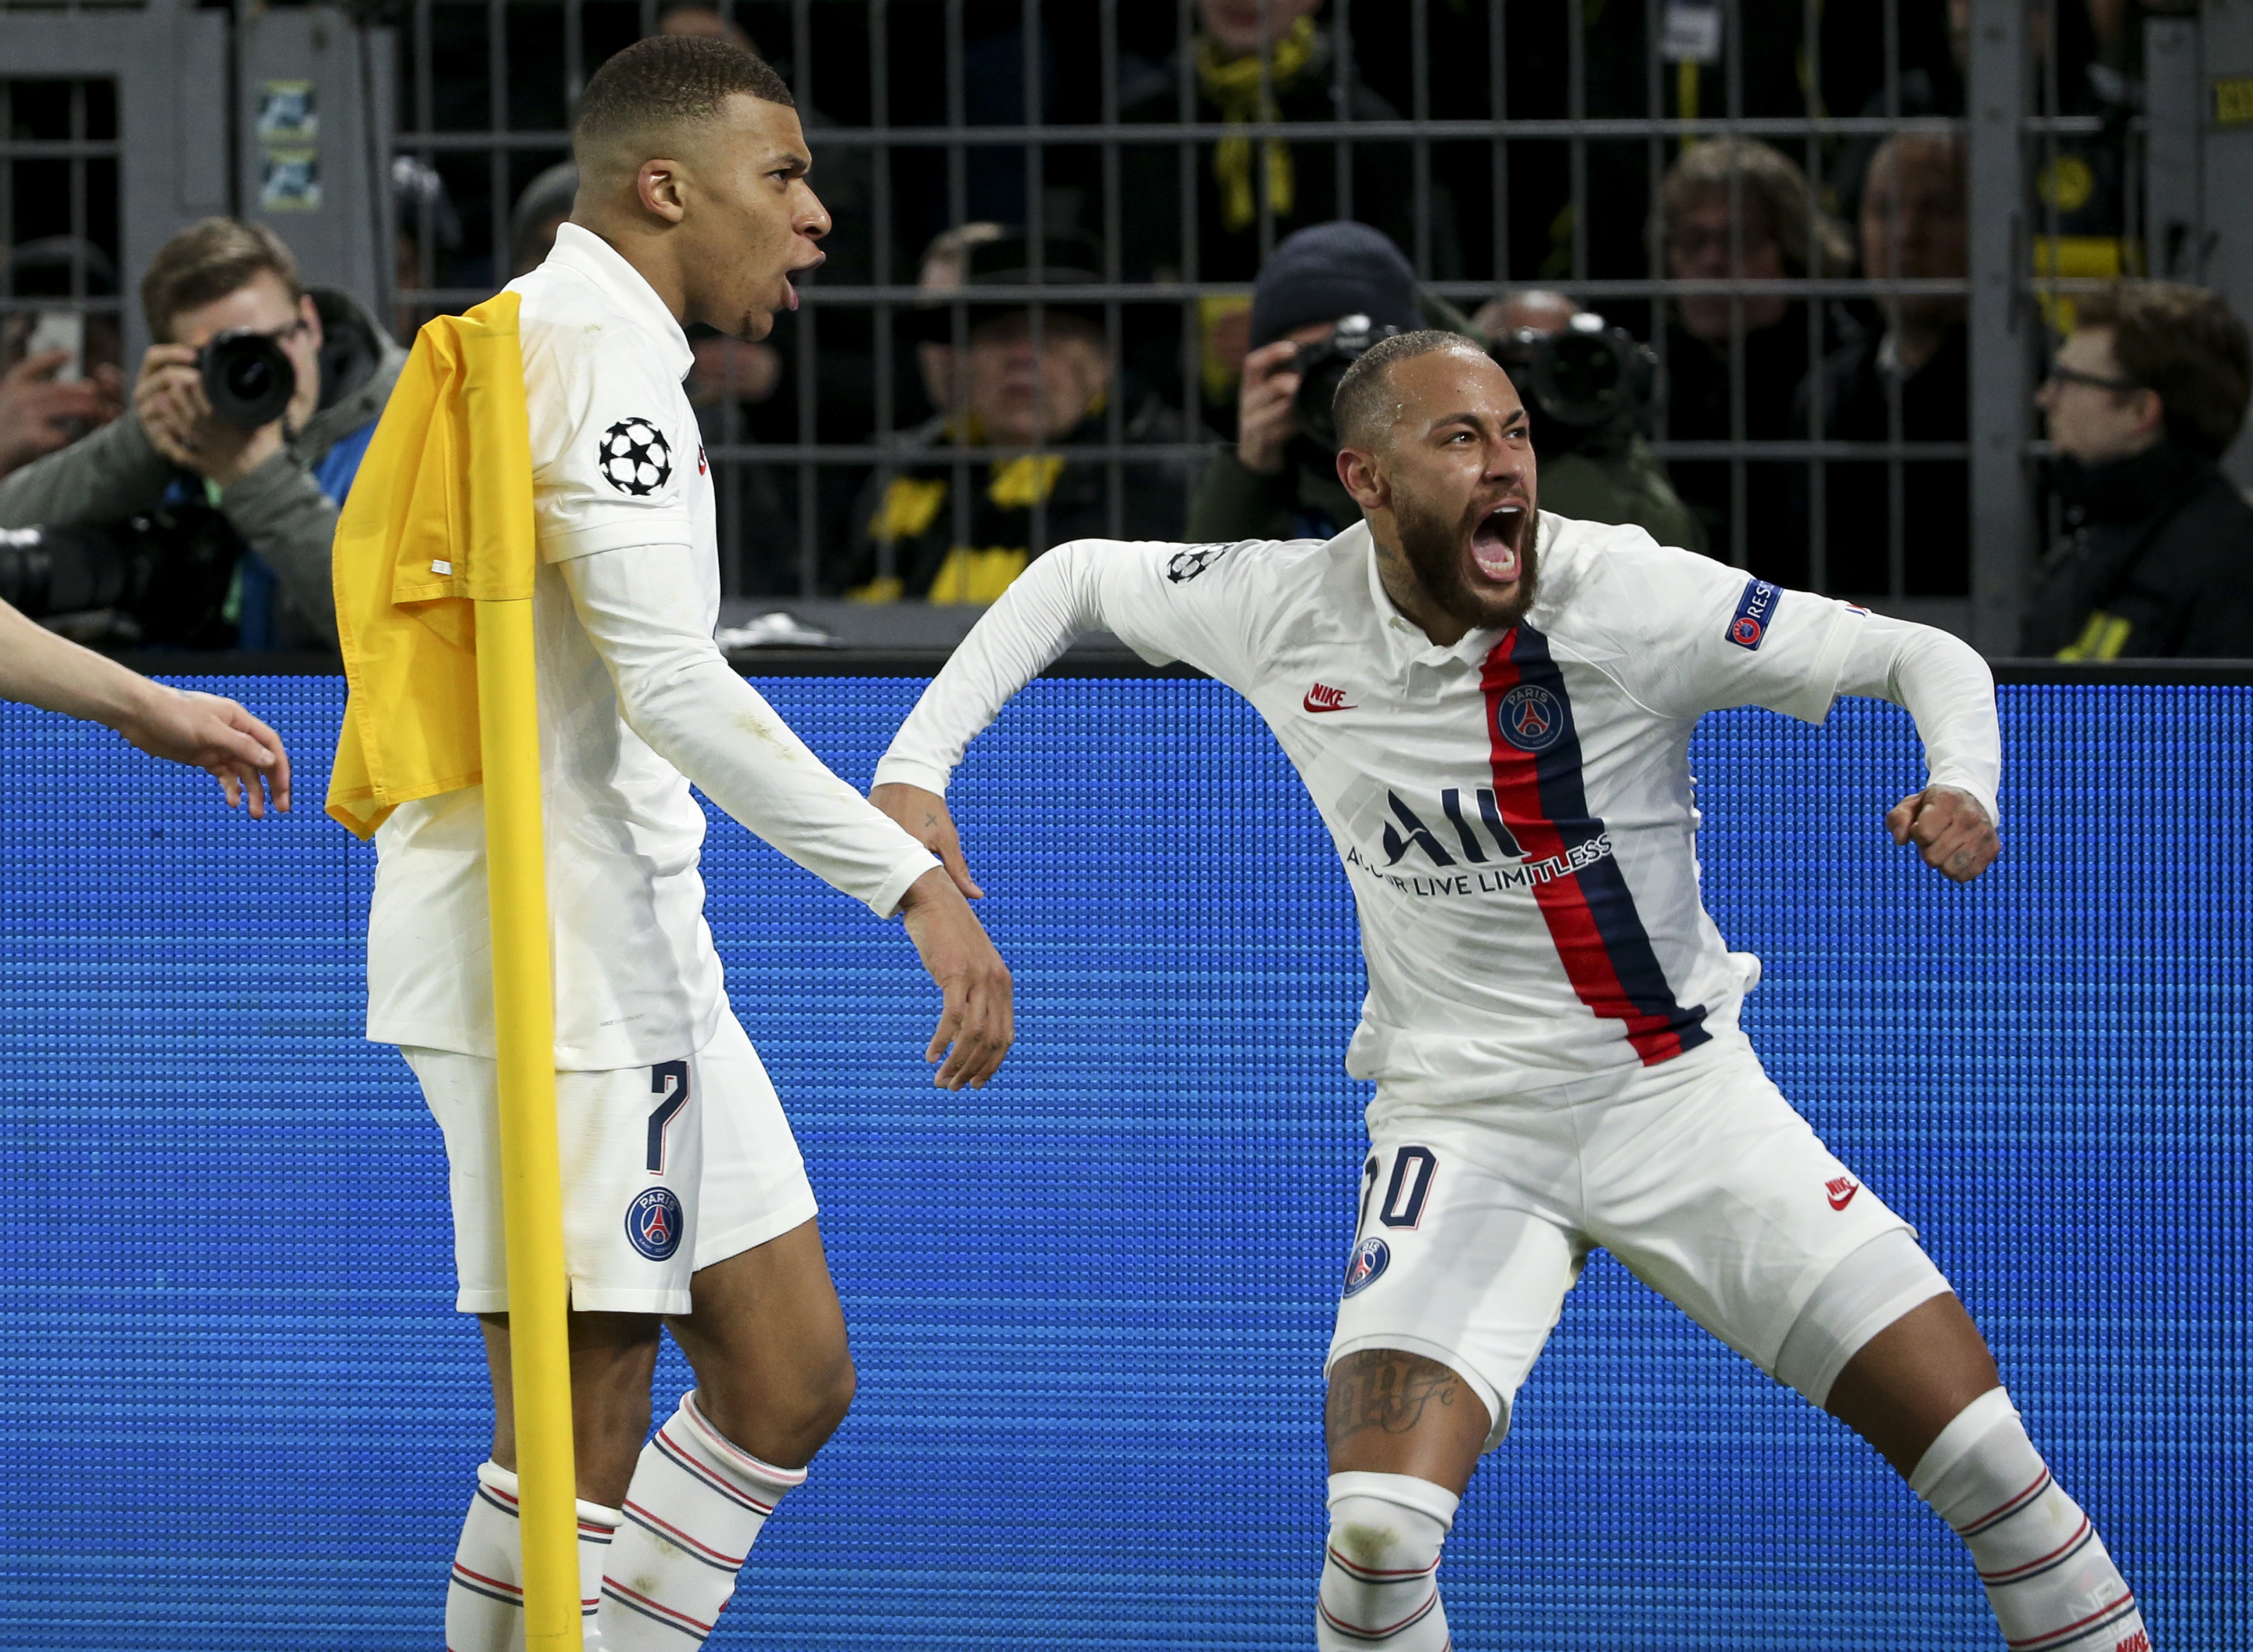 Champions League once again exposes cracks at PSG